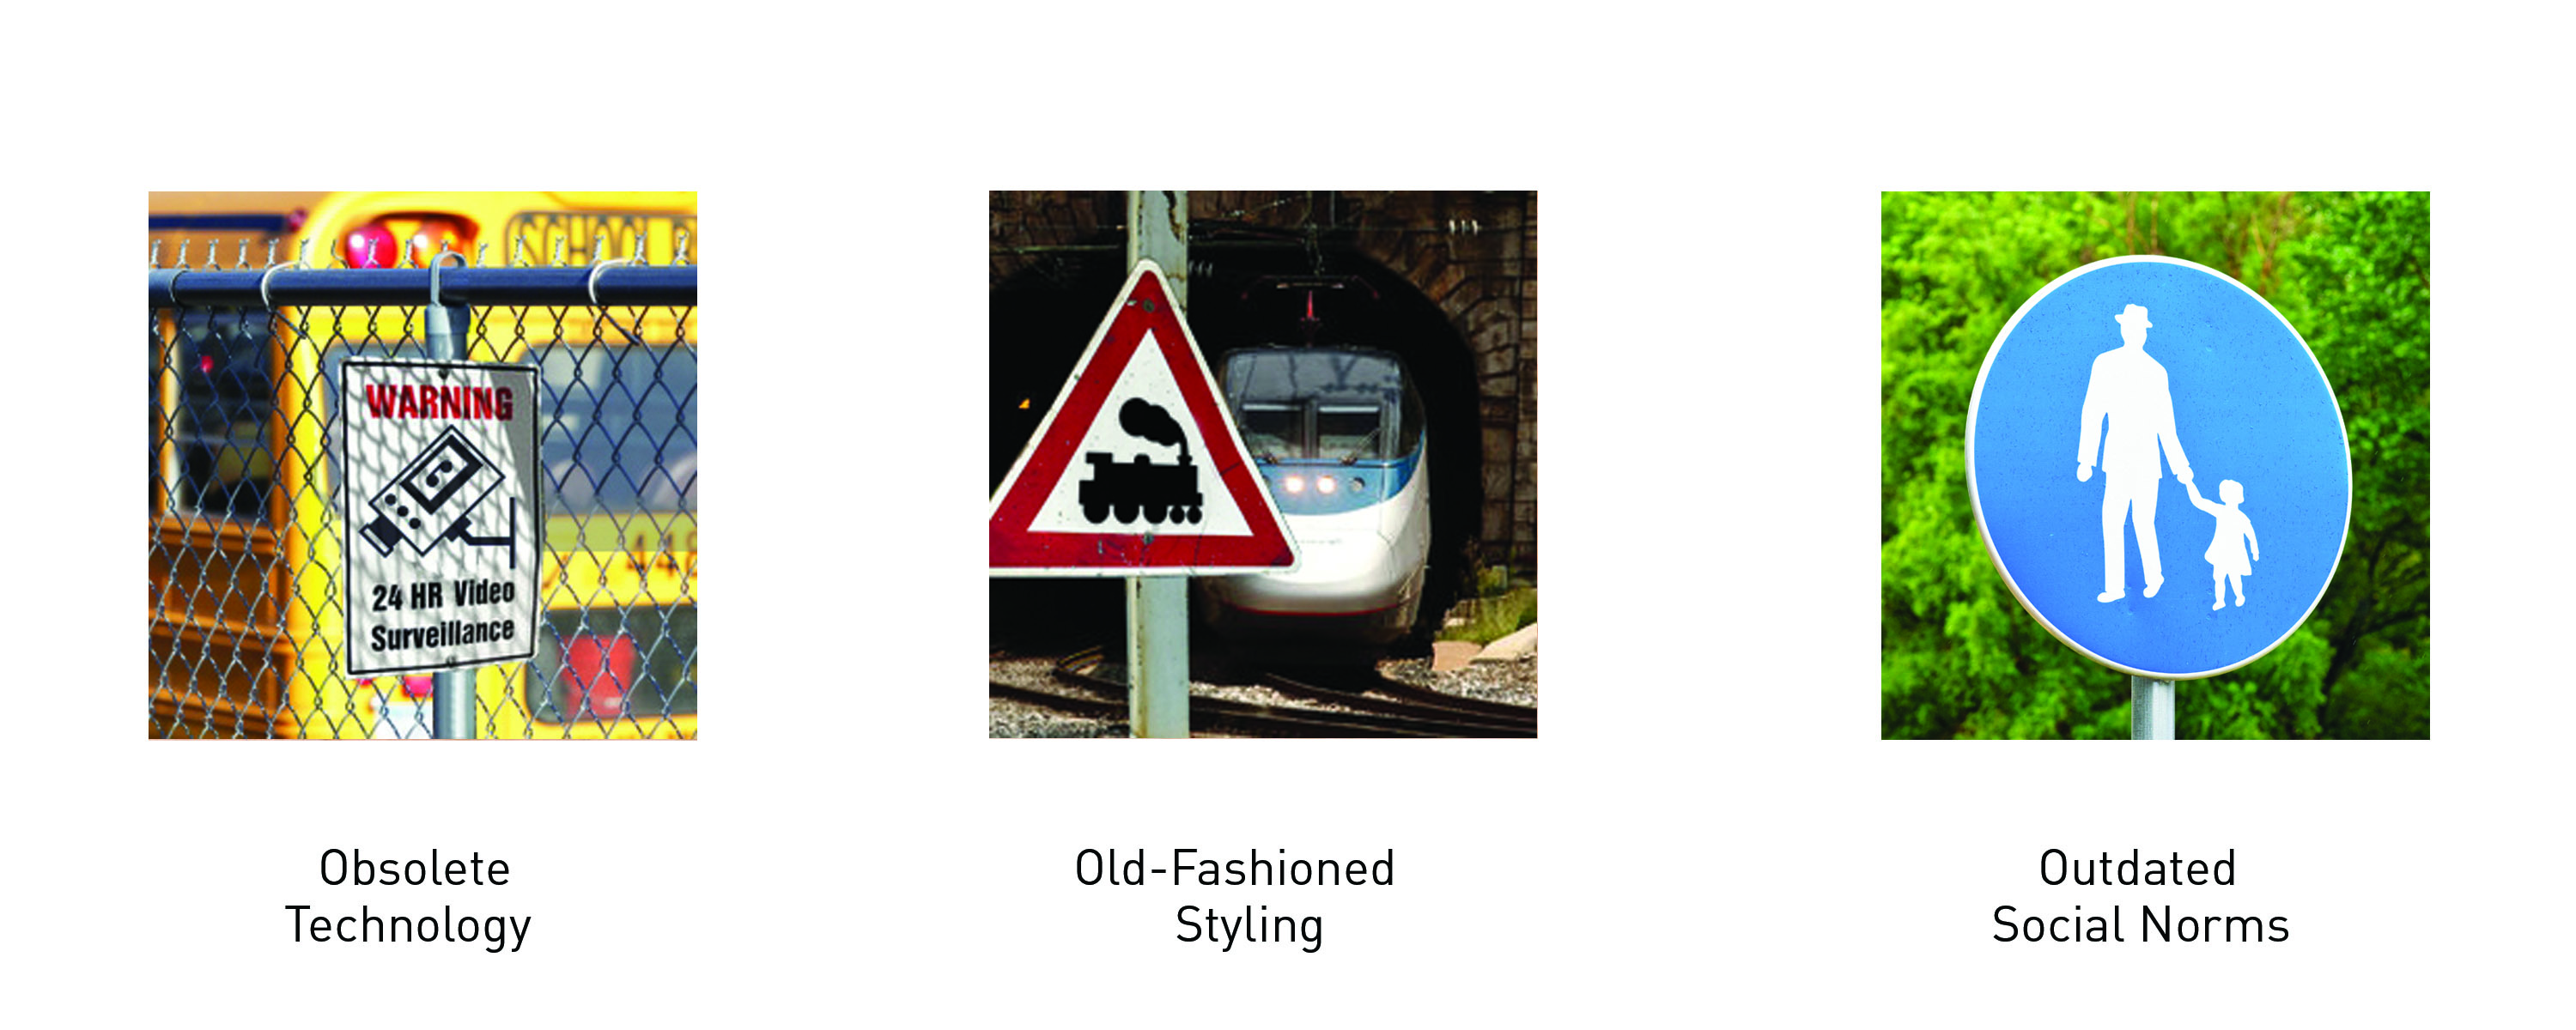 Figure 1.: Obsolescence of Styling: Iconographic visual signage is made obsolescent  as technology and styles change, and social norms become outdated. Source: Dobson, T. 2016.